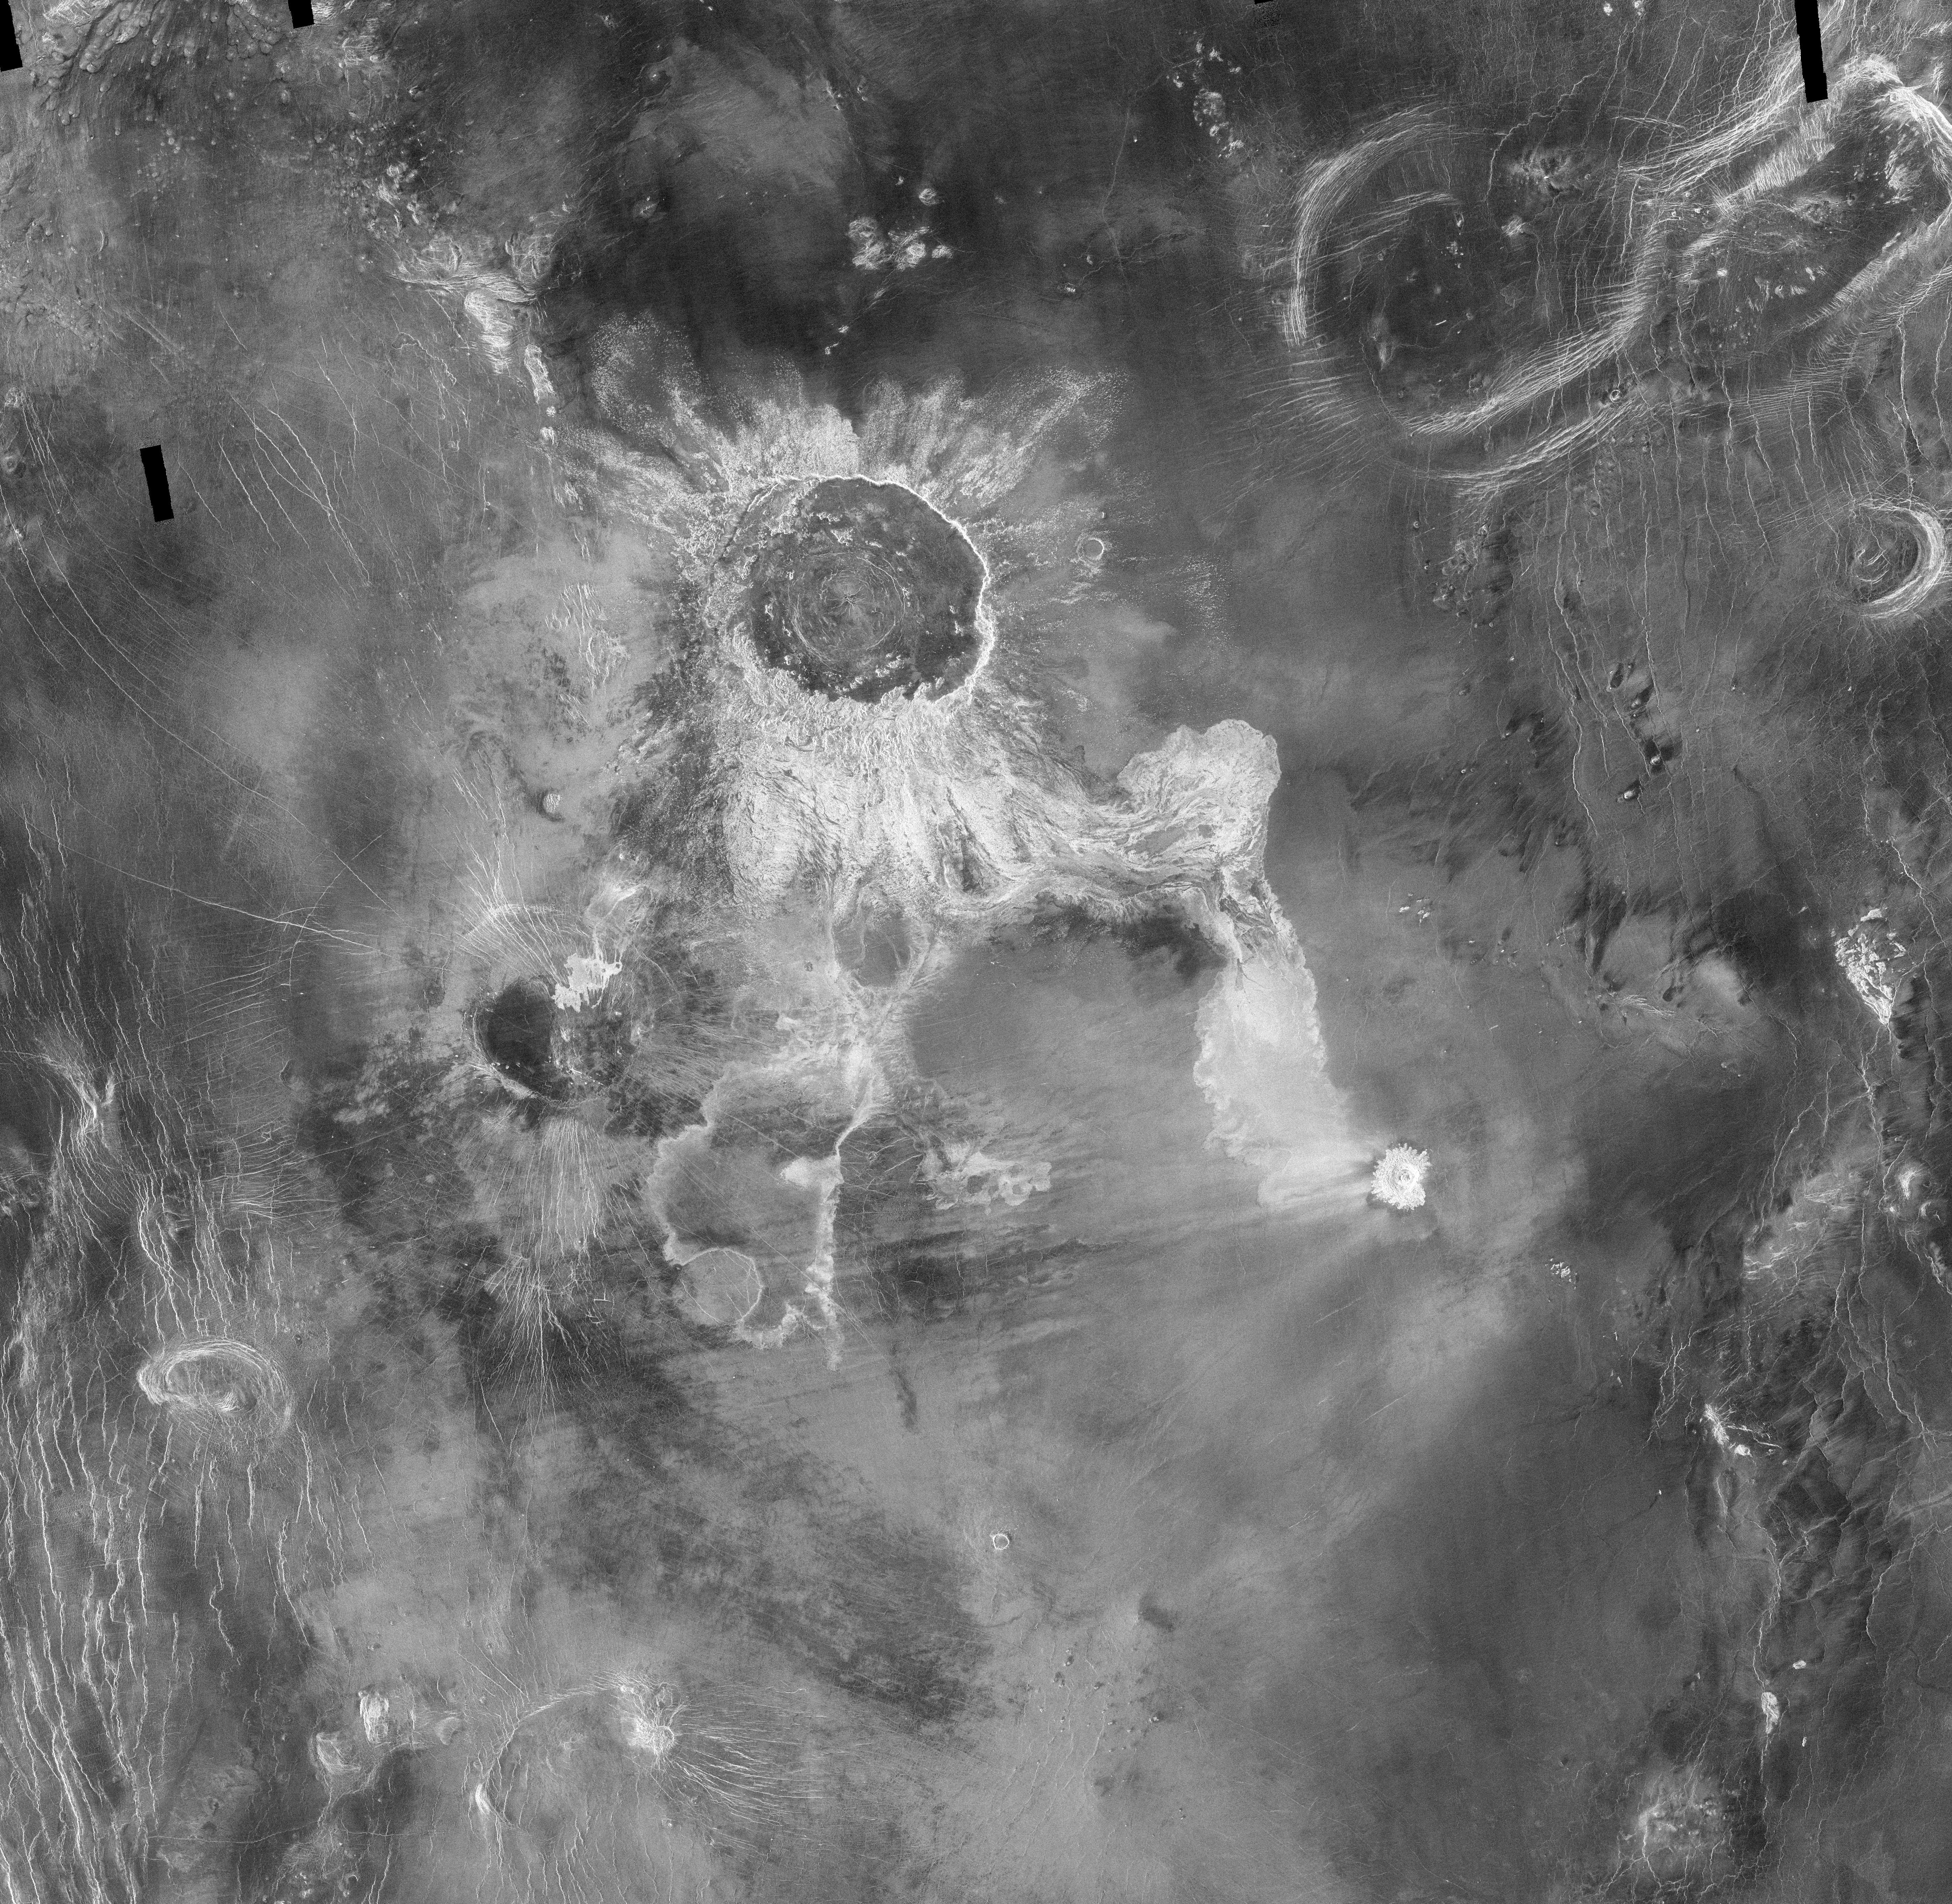 Crater on Venus